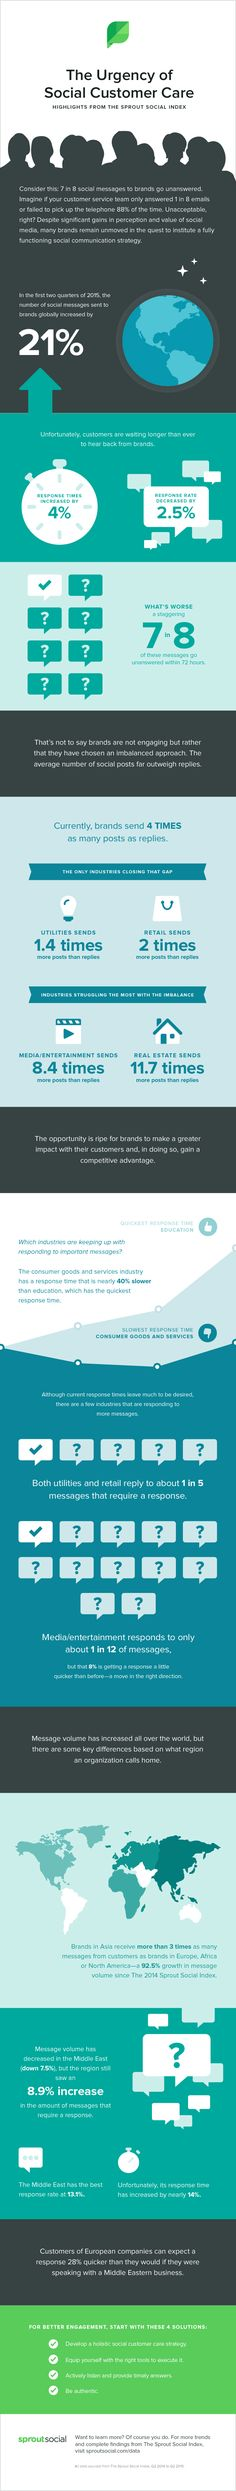 7 in 8 Social Messages to Brands Go Unanswered [INFOGRAPHIC] - @socialmedia2day